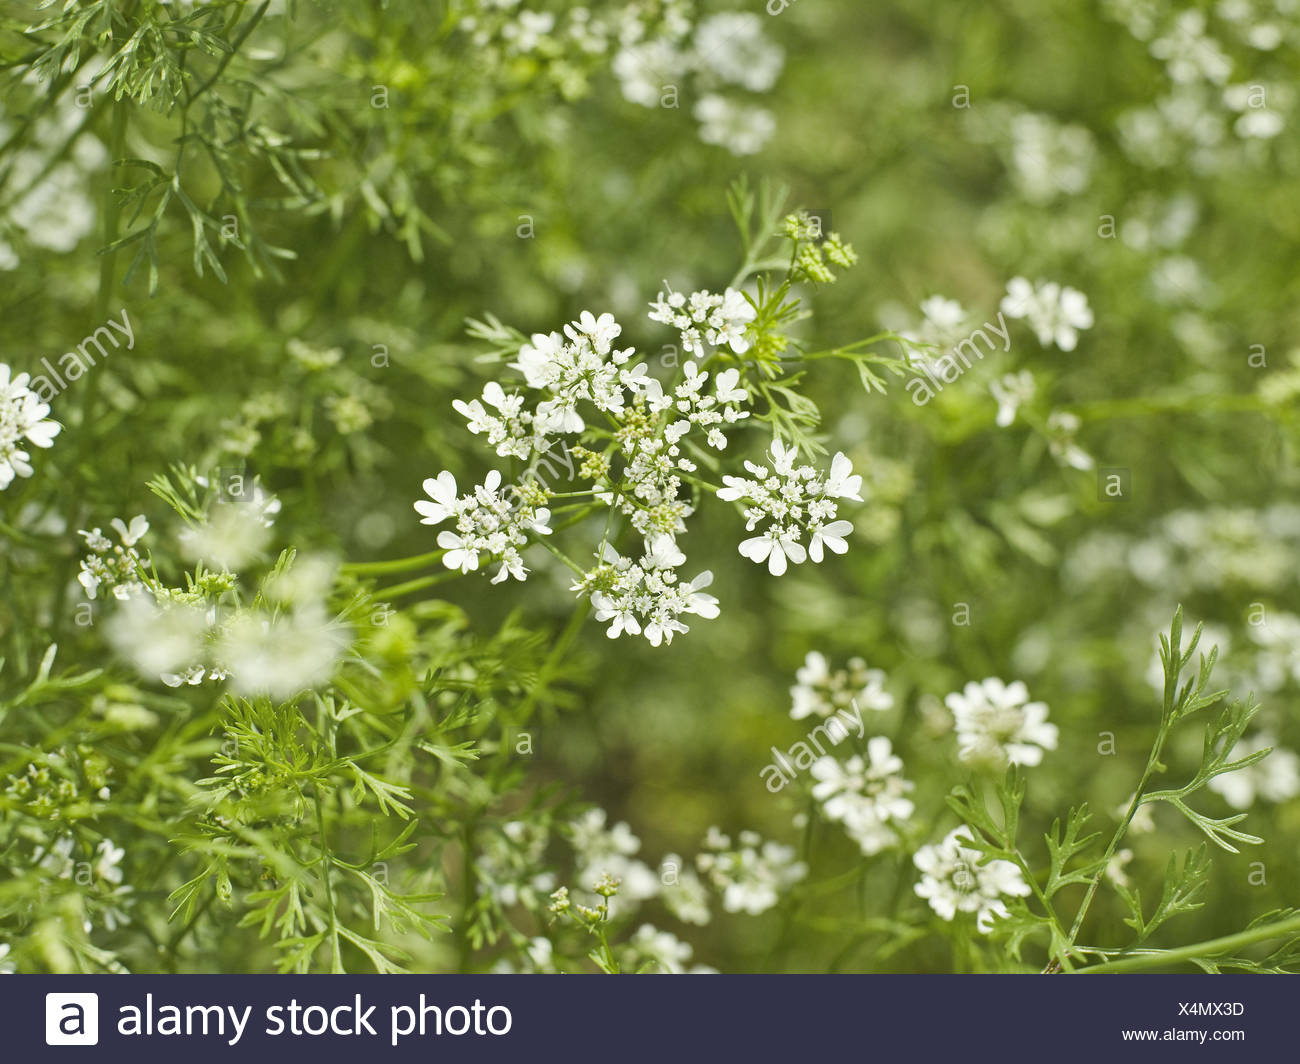 Caraway, Carum carvi, detail, blossoms, white, plant, Doldenblütler, herbs, culinary spice, useful plant, nature medicine, herbs, blossom, period of bloom, nature, outside, meadow caraway, Stock Photo